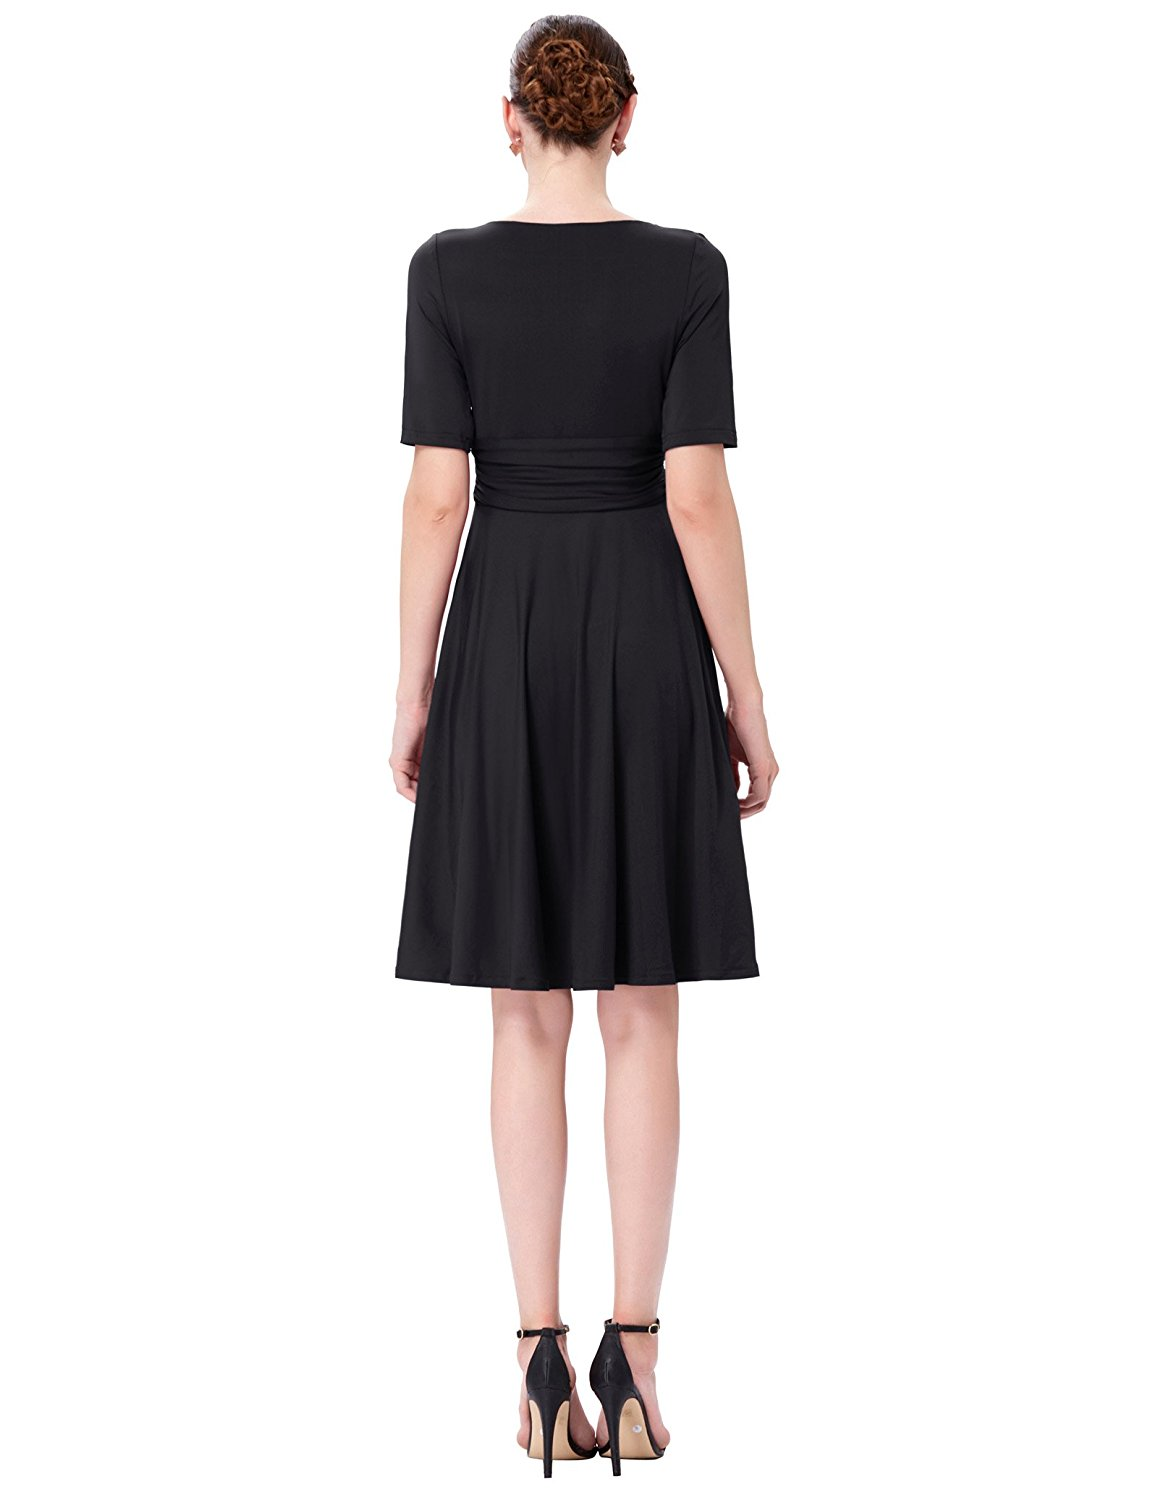 Dress Me Up Take Me Out: Classically Me Black Retro Dress